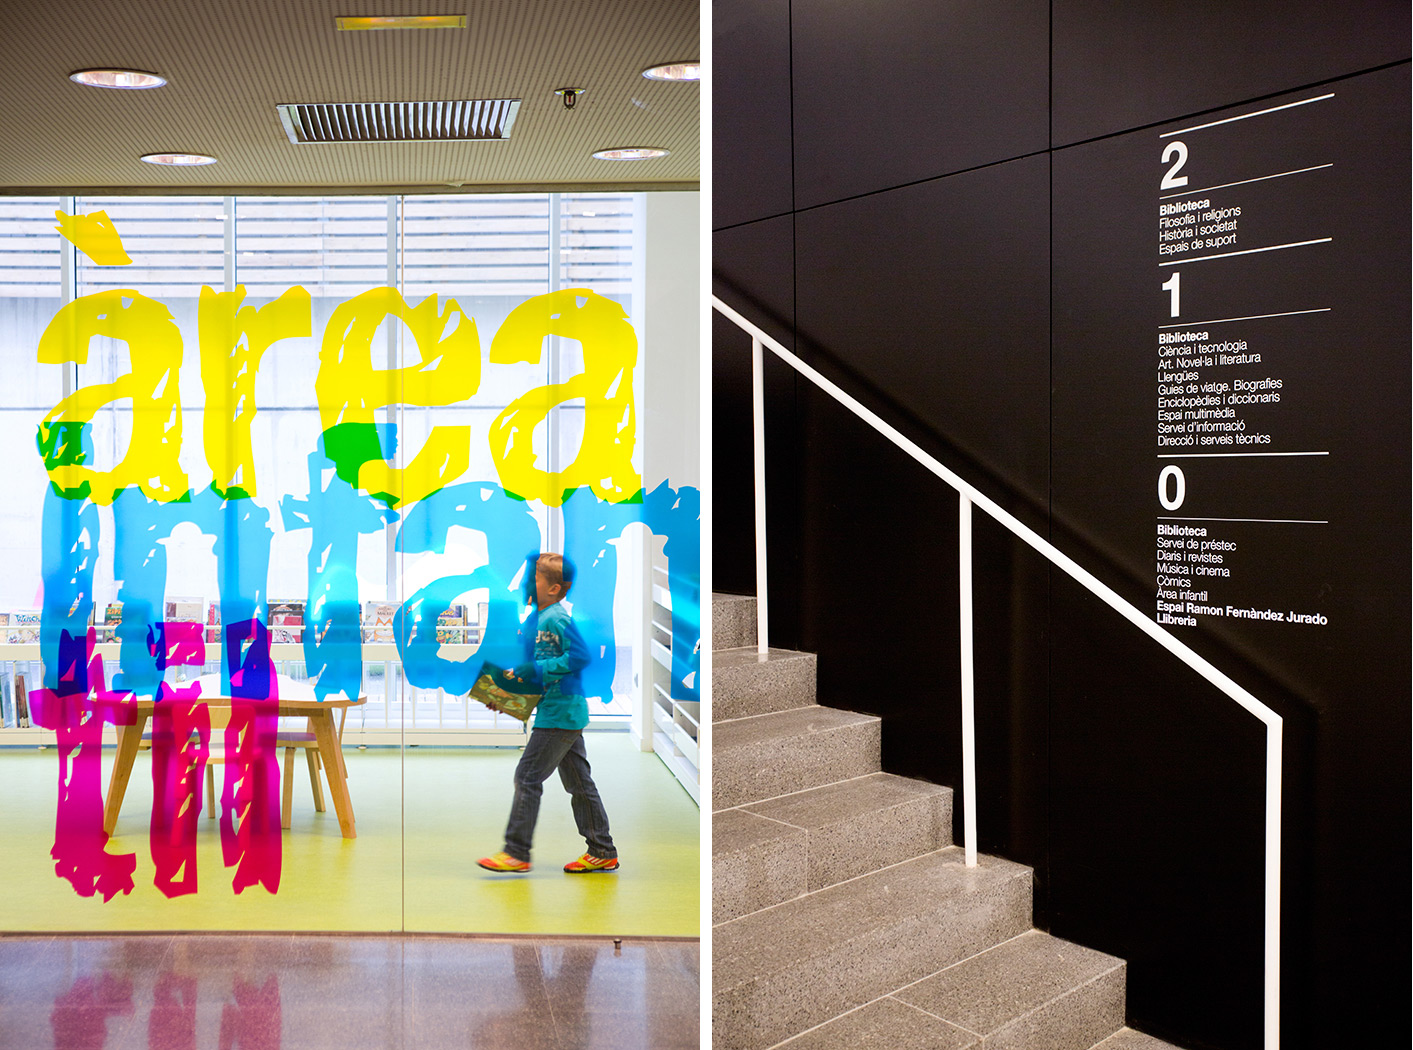 Environmental Graphics for Biblioteca Central de Castelldefels. Designed by PFP, Disseny Gràfic @enviromeant.com